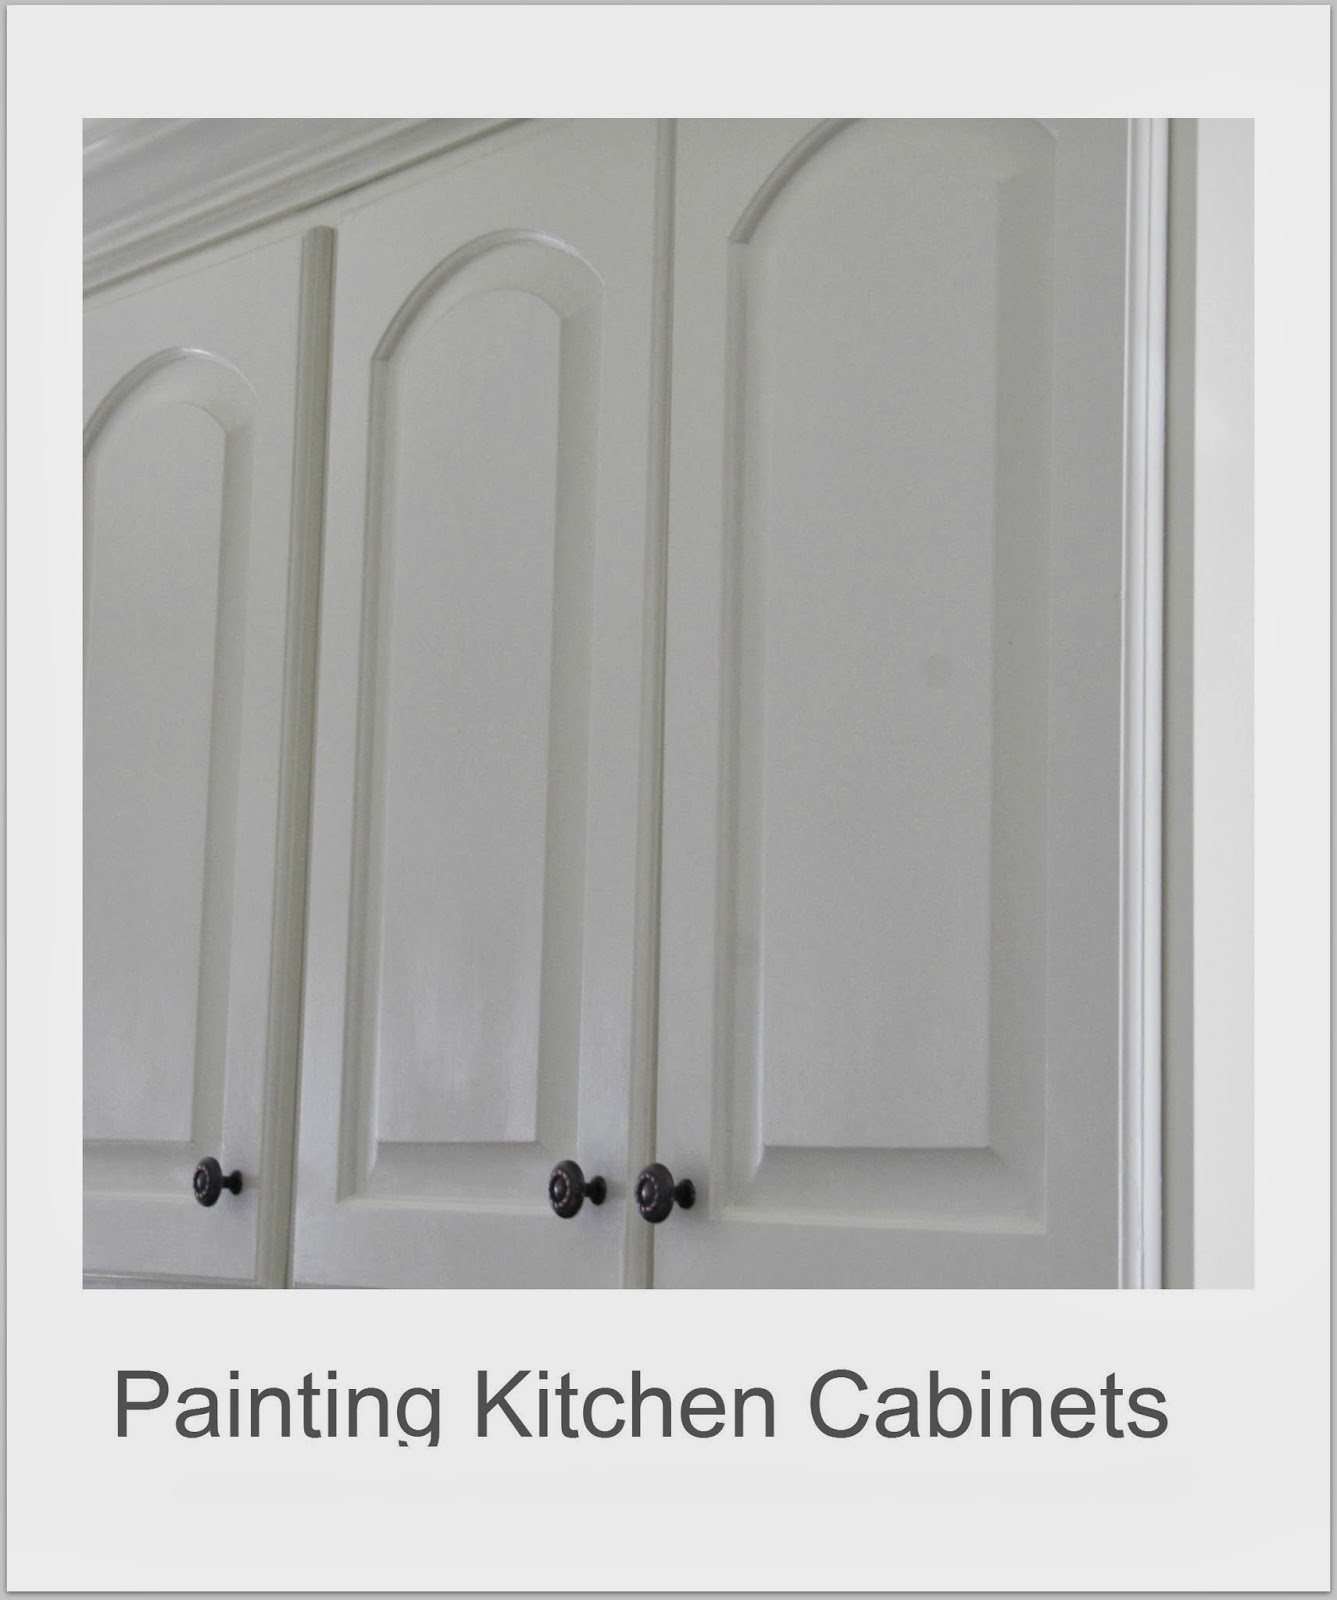 http://thewickerhouse.blogspot.com/2013/04/painted-kitchen-cabinets.html